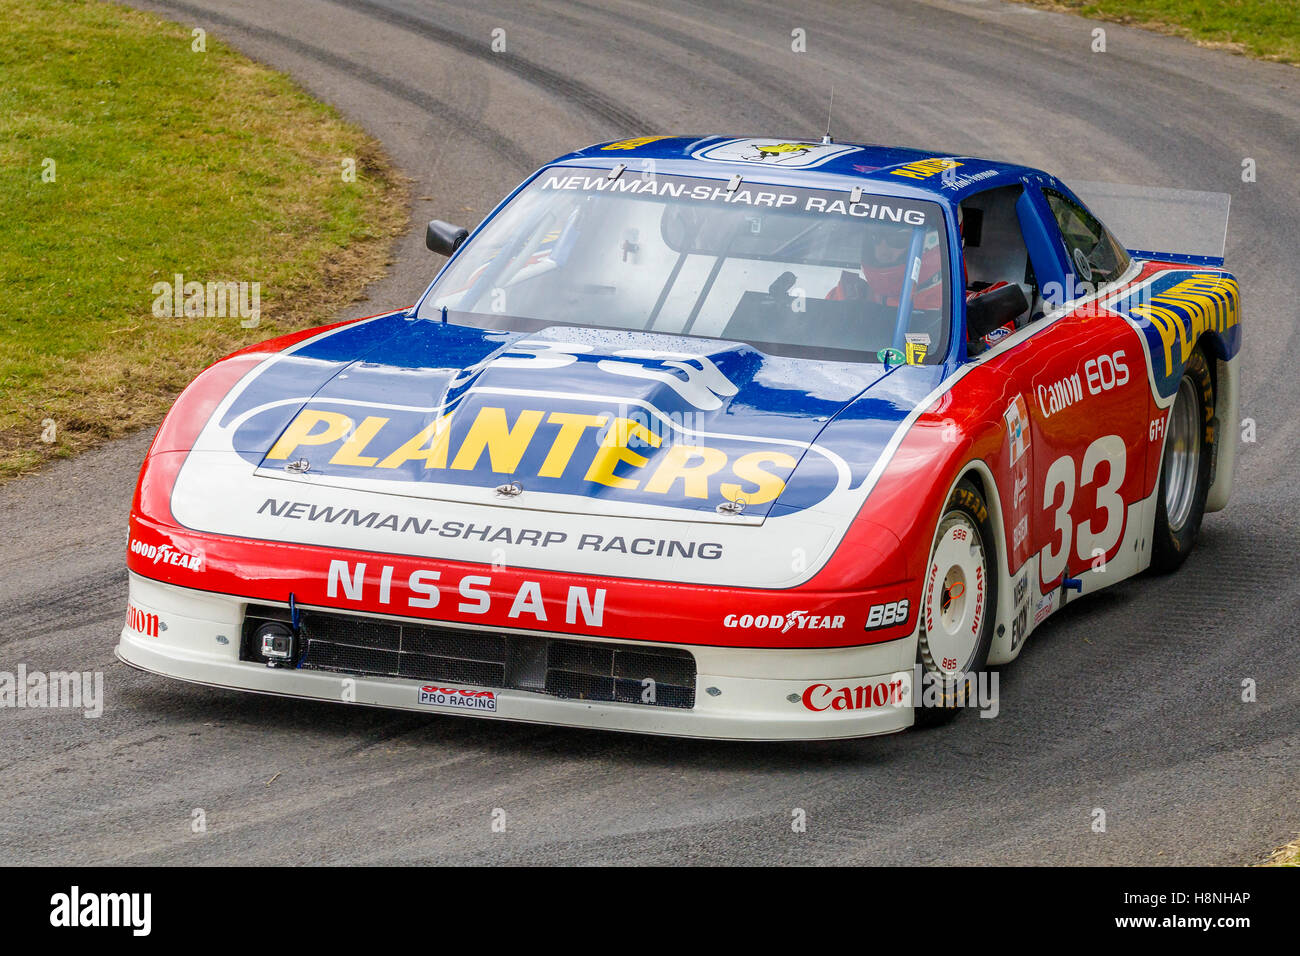 1987 nissan 300zx imsa gto with driver adam carolla at the 2016 goodwood festival of speed sussex uk